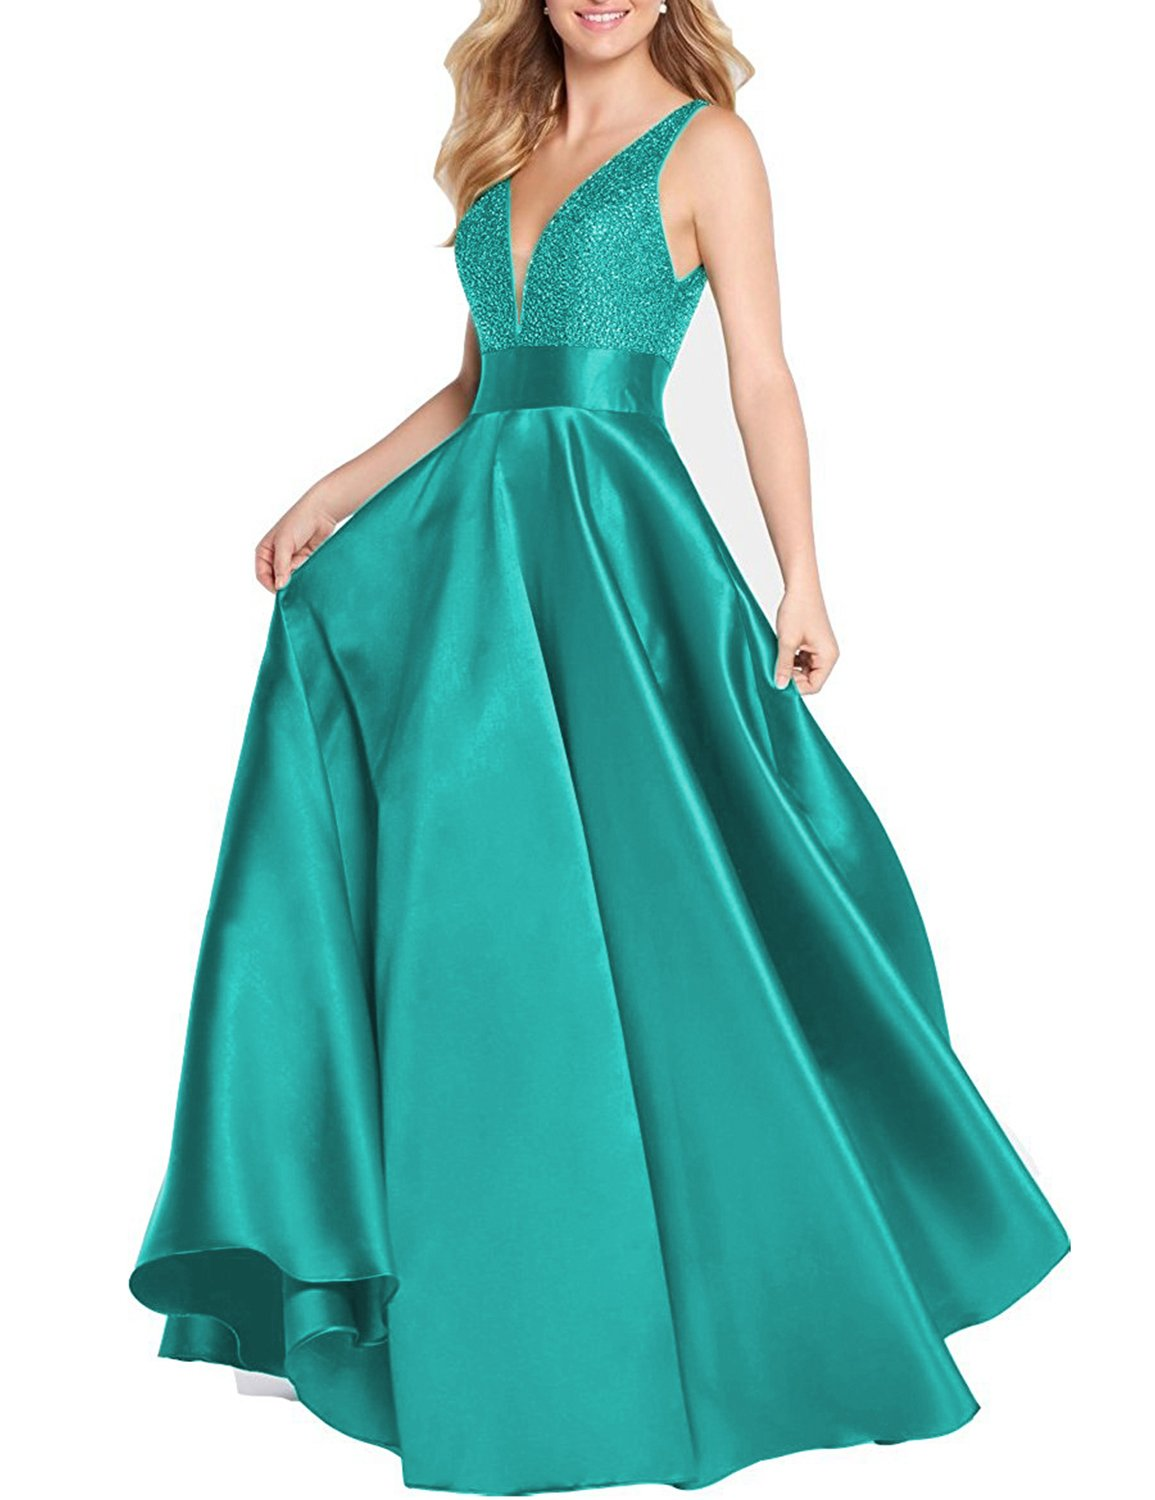 5bbc268b76f YIRENWANSHA Fashion 2018 Sexy V Neck Evening Dress For Women Party A Line  Long Sleeveless Gown Wedding Sash Like Empire Waist Lace Up Back SHEV86  Turquoise ...